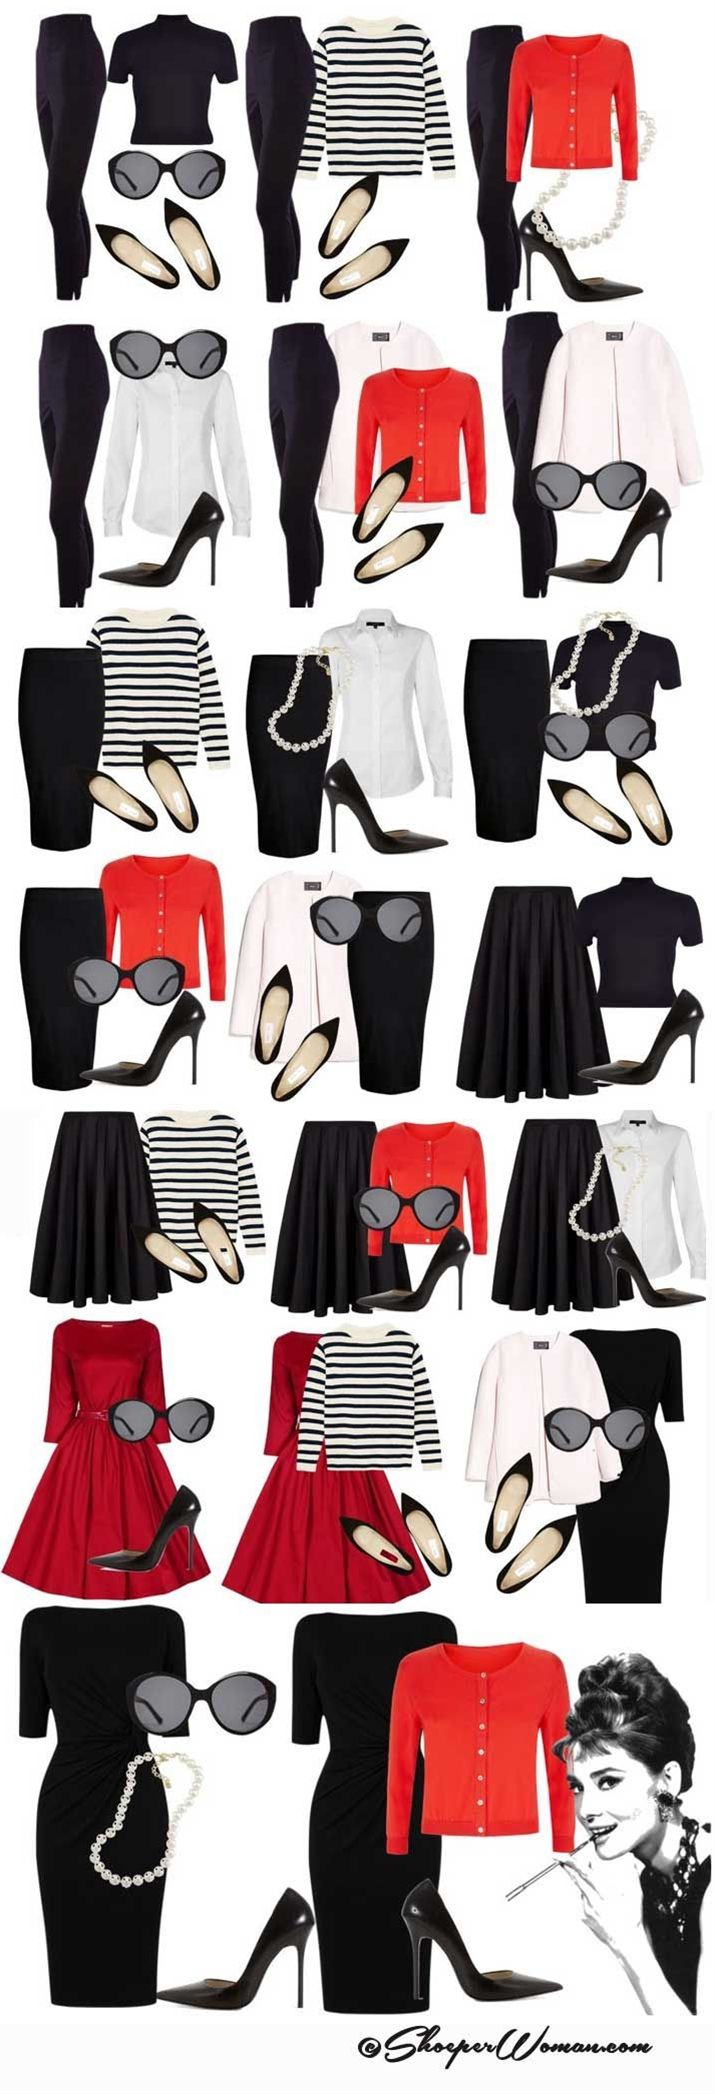 Audrey Hepburn style outfits from small capsule wardrobe.